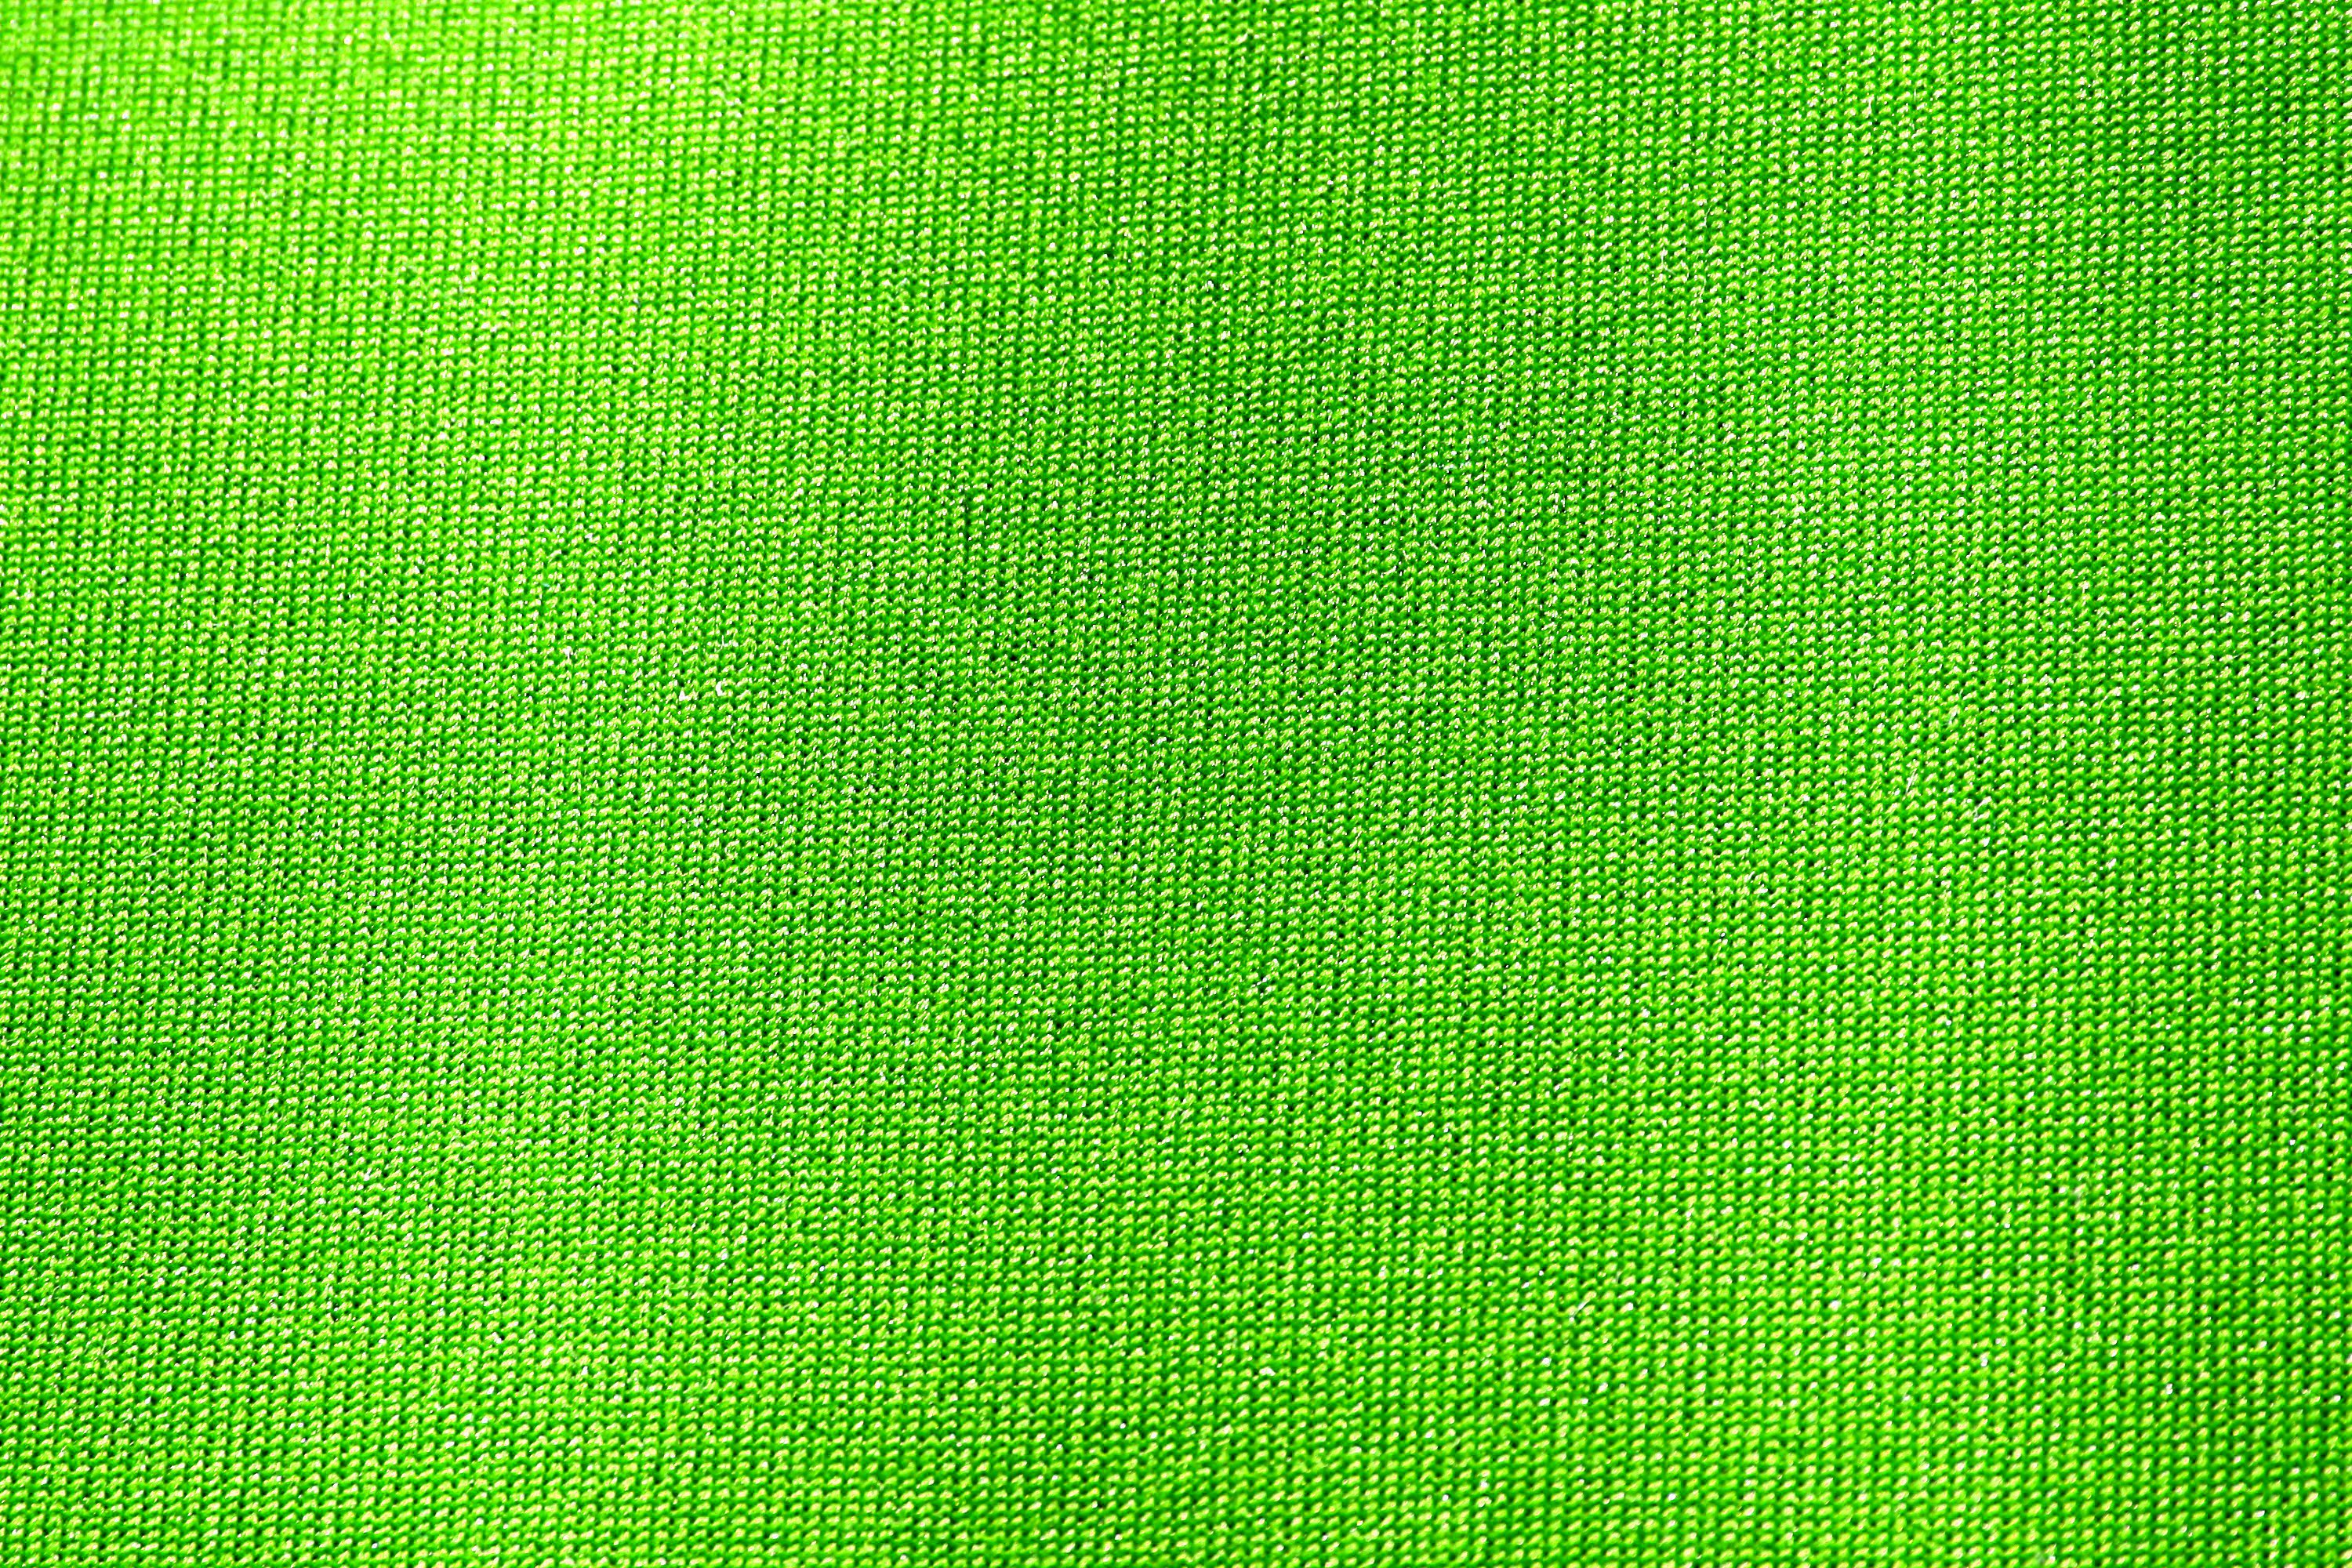 Download Lime Green Textured Wallpaper Gallery Lime Green Texture Background